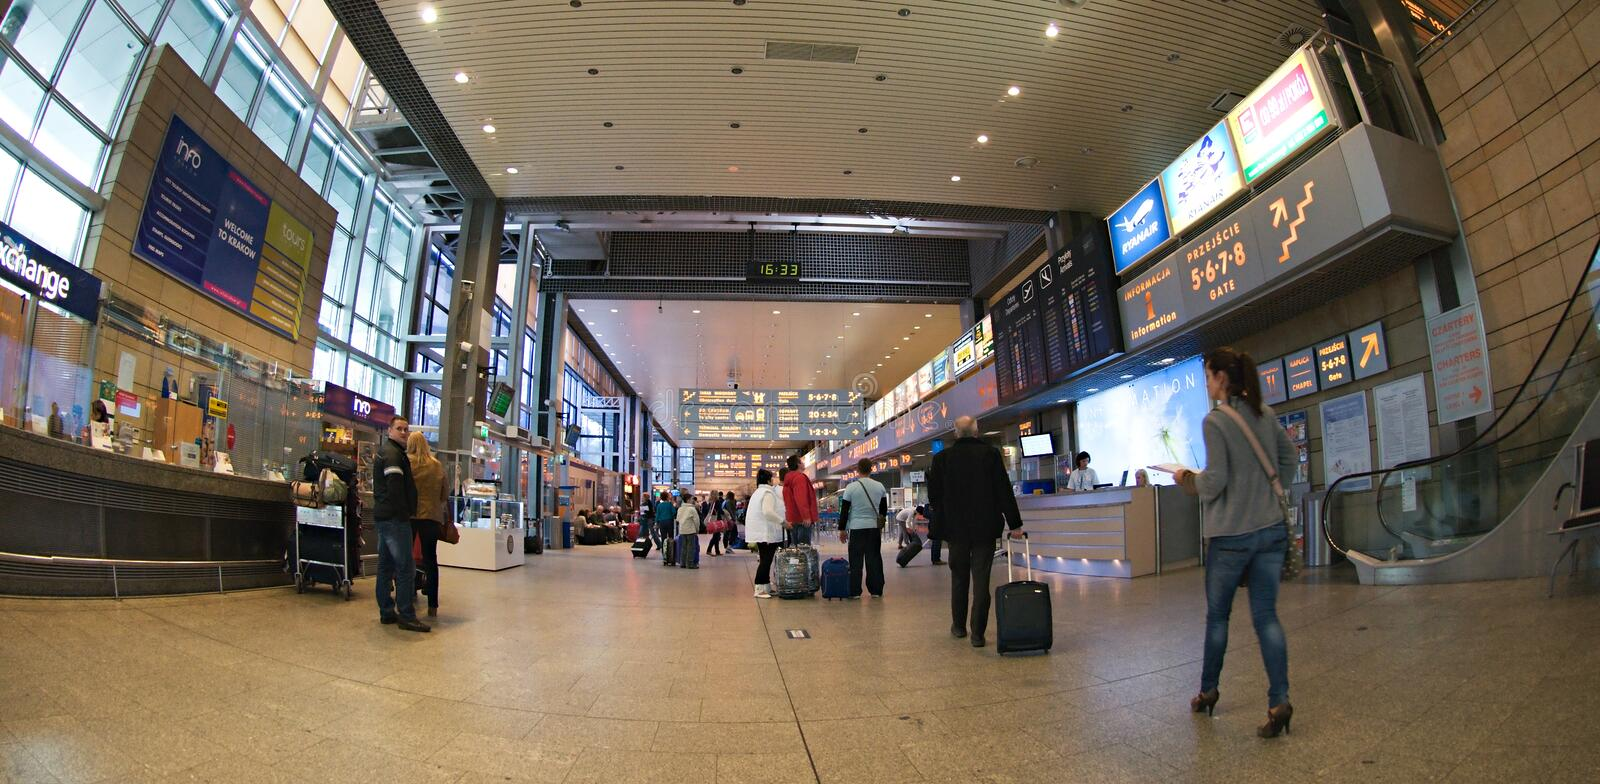 Check-in In Krakow Airport Editorial Stock Image